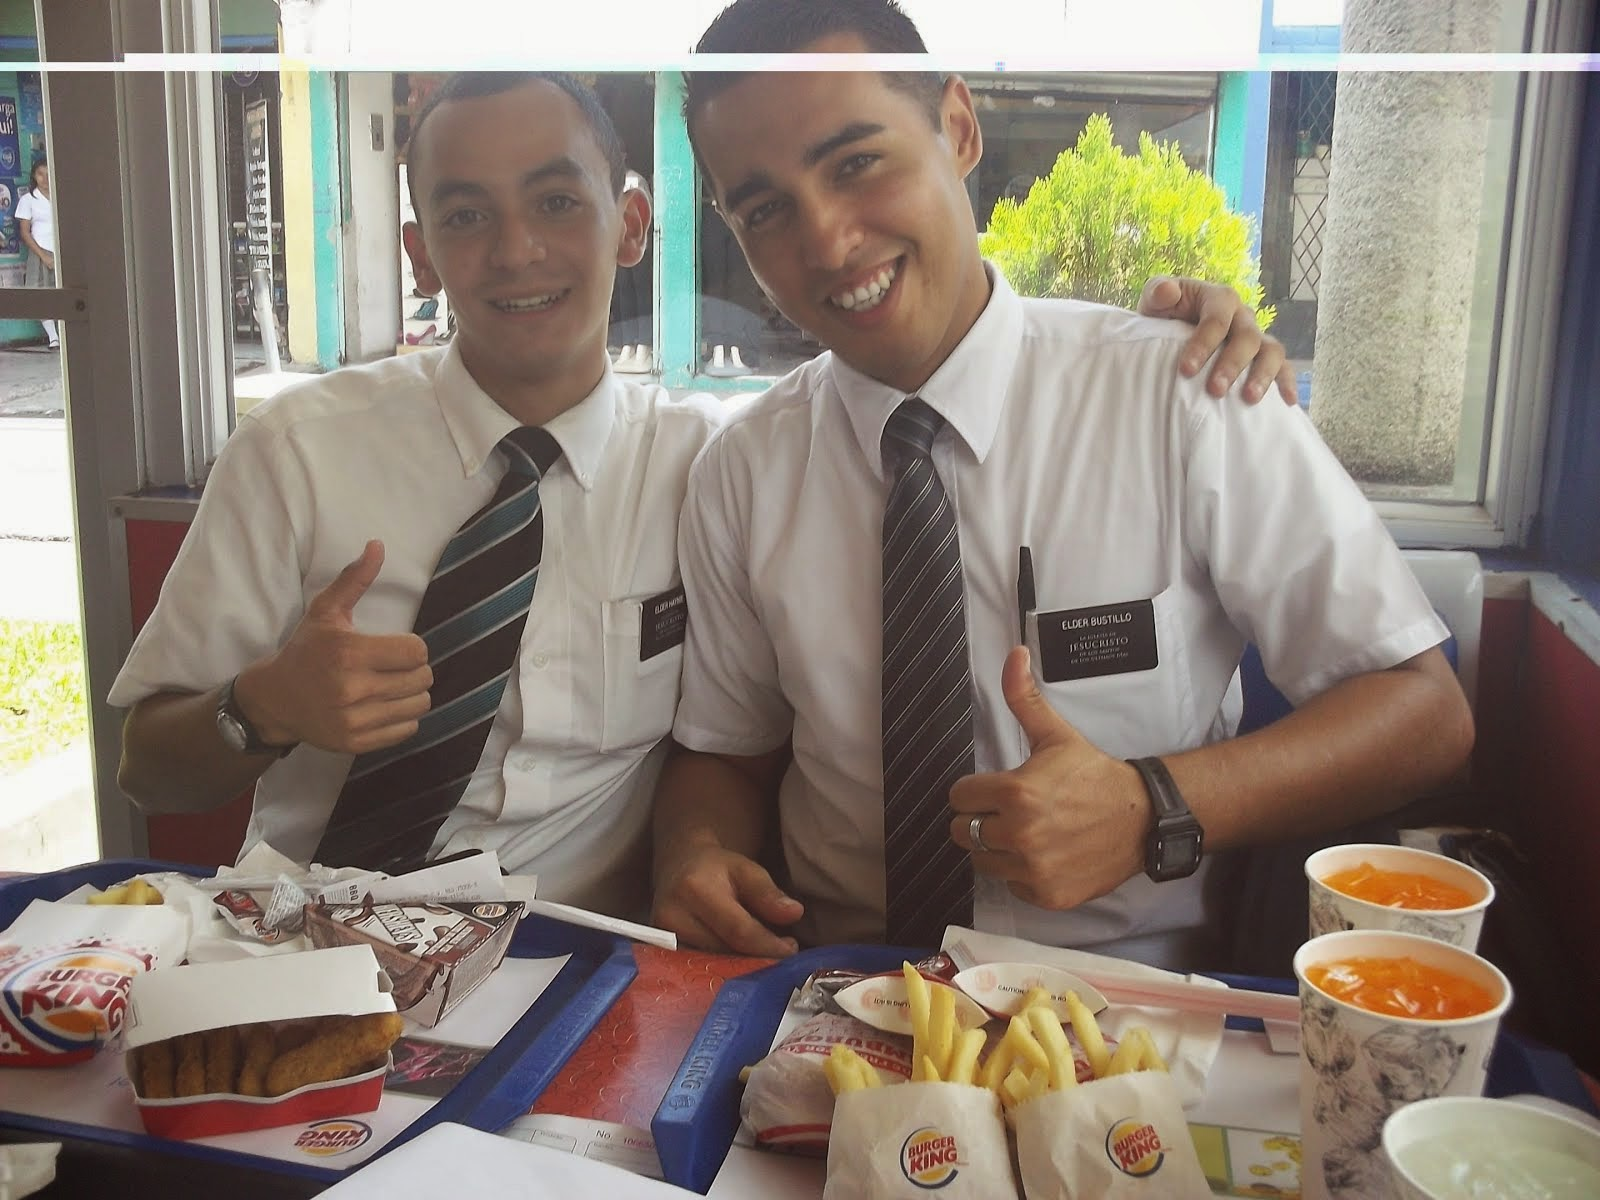 Elder Haynie and Elder Bustillo